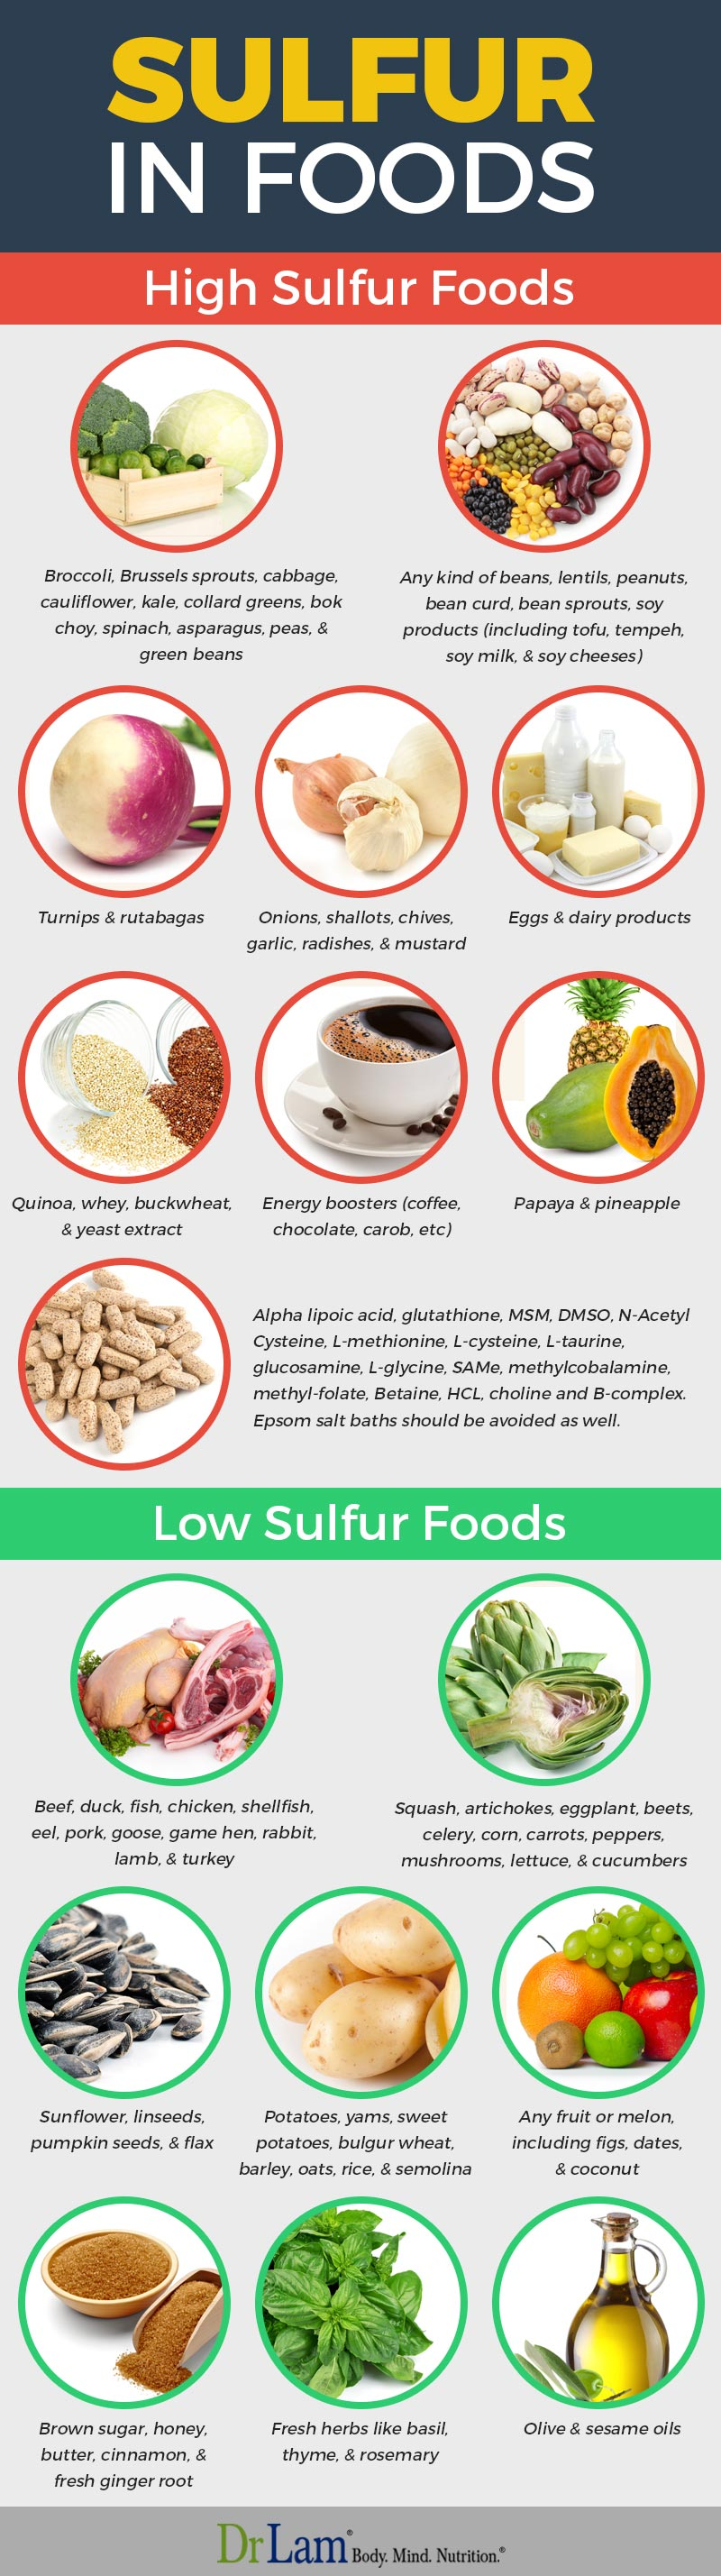 Check out this easy to understand infographic about foods low and foods high in sulfur